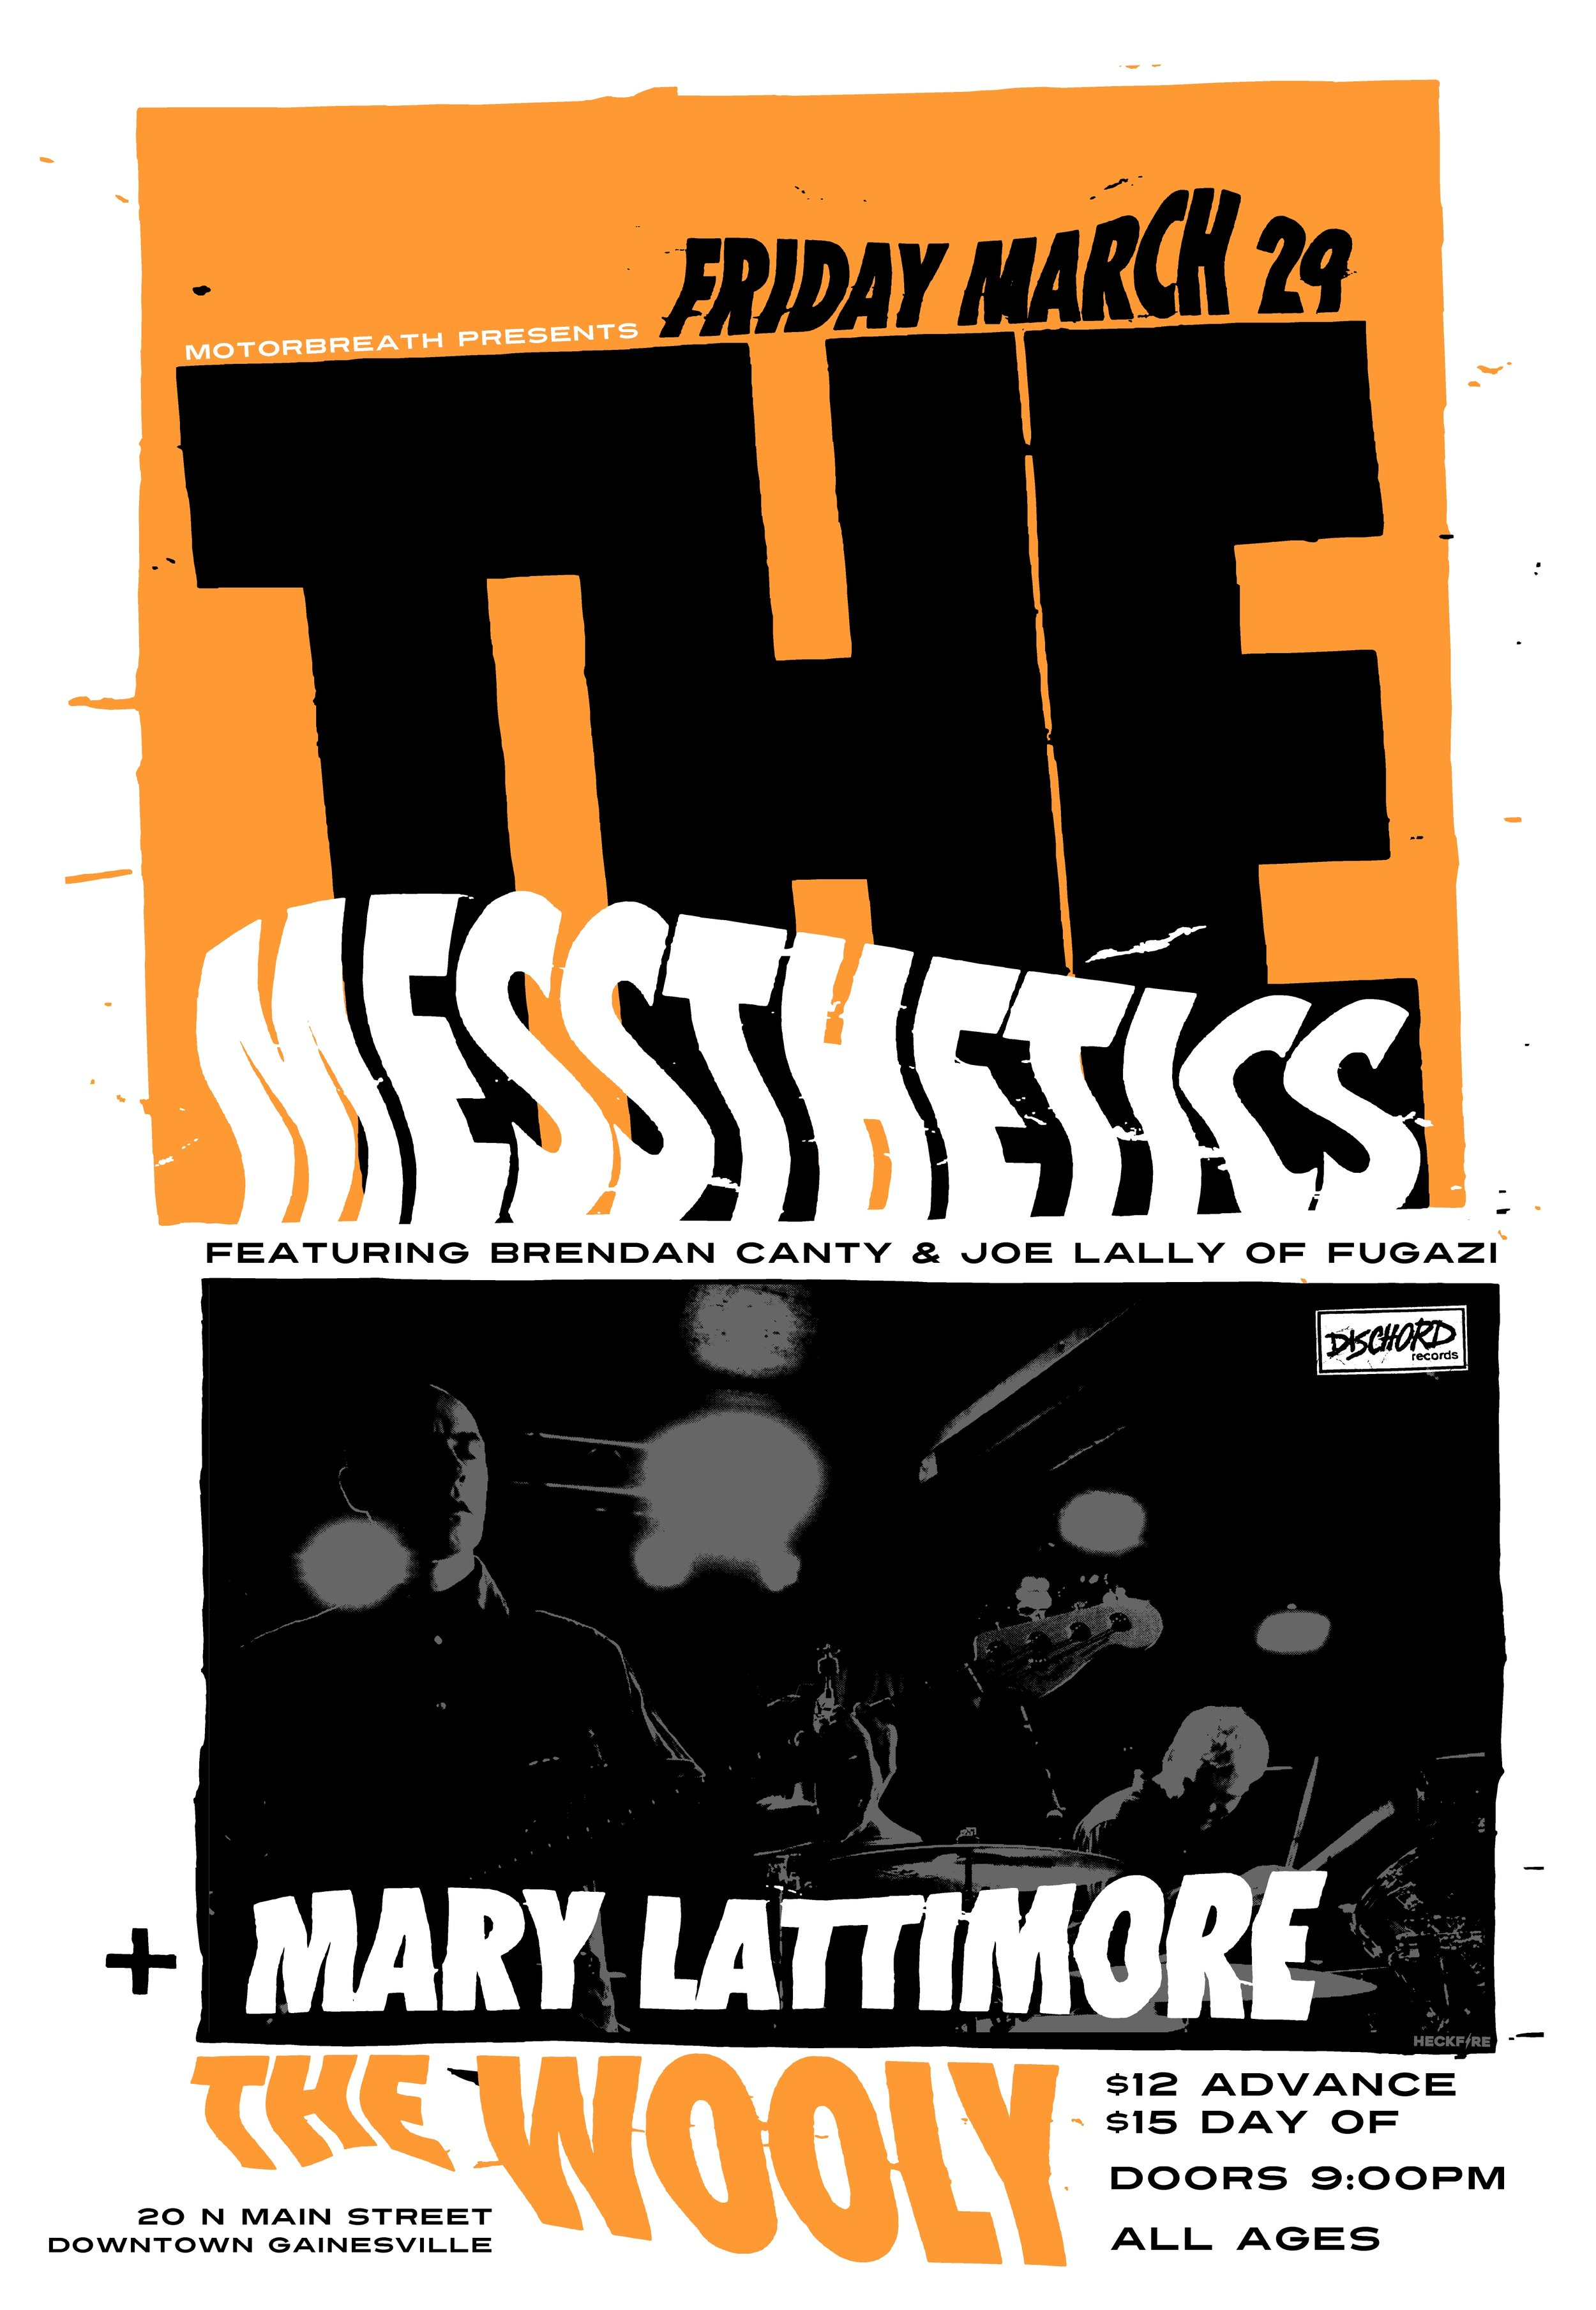 "Friday, March 29  Motorbreath Presents   The Messthetics  (Dischord Rec, featuring members of Fugazi)  Mary Lattimore / Harpist  + TBA  at The Wooly: 20 N Main Street, Gainesville FL 32601  Doors at 9pm, $12adv / $14dos (All Ages Show)   Buy Tickets   Tickets available at Hear Again & Arrow's Aim Rec  The last time drummer Brendan Canty and bassist Joe Lally were in a band together, they were the rhythmic architects for Fugazi, an organization whose decade and a half of disciplined progressivism provided a necessary bridge between the zenith of late-punk expression and everything alternative in rock that followed. In 2016, the two were enlisted by guitarist Anthony Pirog in a conspiracy to subvert and reimagine the power trio, bringing fully into the 21st Century a form that may have reached near perfection with Hendrix's Band of Gypsys on the very first day of the 1970s. With a self-titled recording scheduled for release in the Spring of 2018 on Dischord, the Messthetics will widen the reach of a decisive instrumental music that so far, they have only shared with a privileged handful of east coast and southern audiences. Across its eight original compositions and one cover, Anthony guides the sound through complex changes and harmonic densities that might compound, but never confound or muddy its connection with the listener's body. Recorded by Brendan in their practice space, the group's debut gives Anthony ample opportunities to swap guitar textures and styles as freely as an octopus changes patterns. Brendan's kit has a big heavy bell that he brought back from the Fugazi days. He maneuvers through this rhythmically shifty music with a fluid briskness that is periodically disrupted by the clang of his bell. Joe spent 8 years in Italy, among other things, woodshedding on eastern rhythms counted in 7 and 13, perfect preparation for the oddly-metered work of the Messthetics. He brings a rock-solid foundation to the groove at the same time playing a harmonic complement as ambitious and interesting as Anthony's lines. Bands can be dangerous when their members have accrued enough mileage to see their chops season into something like musical wisdom. When that understanding has the rare opportunity to percolate through a collaborative environment founded in love and anchored in gratitude, well, then shit can get rather intense. Anthony Pirog writes difficult music because original music usually is. Yet the ideas that he feeds through the Messthetics, are embraced by the Canty-Lally time machine, not just with precision and nuance, but with soul, joy, and groove. These last three are, indeed, the big guns in this spiritual war that music must become in the post-Trump era. The initial concept was to mix noise/improv guitar with dance grooves – a kind of apocalyptic dance party where the beat keeps you moving, but the guitarist relentlessly terrorizes you. The first track, ""Mythomania"" retains elements of that posture, but as reality has itself become more daunting, Anthony – a fearless guitarist – has moved closer to his listeners, and is now willing to astonish without being so confrontational about it. That doesn't mean the Messthetics in any way retreat from the responsibilities of a ""hard"" sound, just that its volume and edge never eat the bold structural ideas that define this new music. Anthony will even lubricate his tricky time signatures with energetic two-note riffs to keep the listener head-bobbing through the twisting structures. And when their collective voice is thick and heavy (like on ""Crowds and Power""), it is neither ponderous nor plodding. Their performances and this debut recording have a lift and buoyancy that reflect back into the audience the love and gratitude at the foundation of this trio's journey  — Dr. Thomas Stanley (aka Bushmeat Sound)"